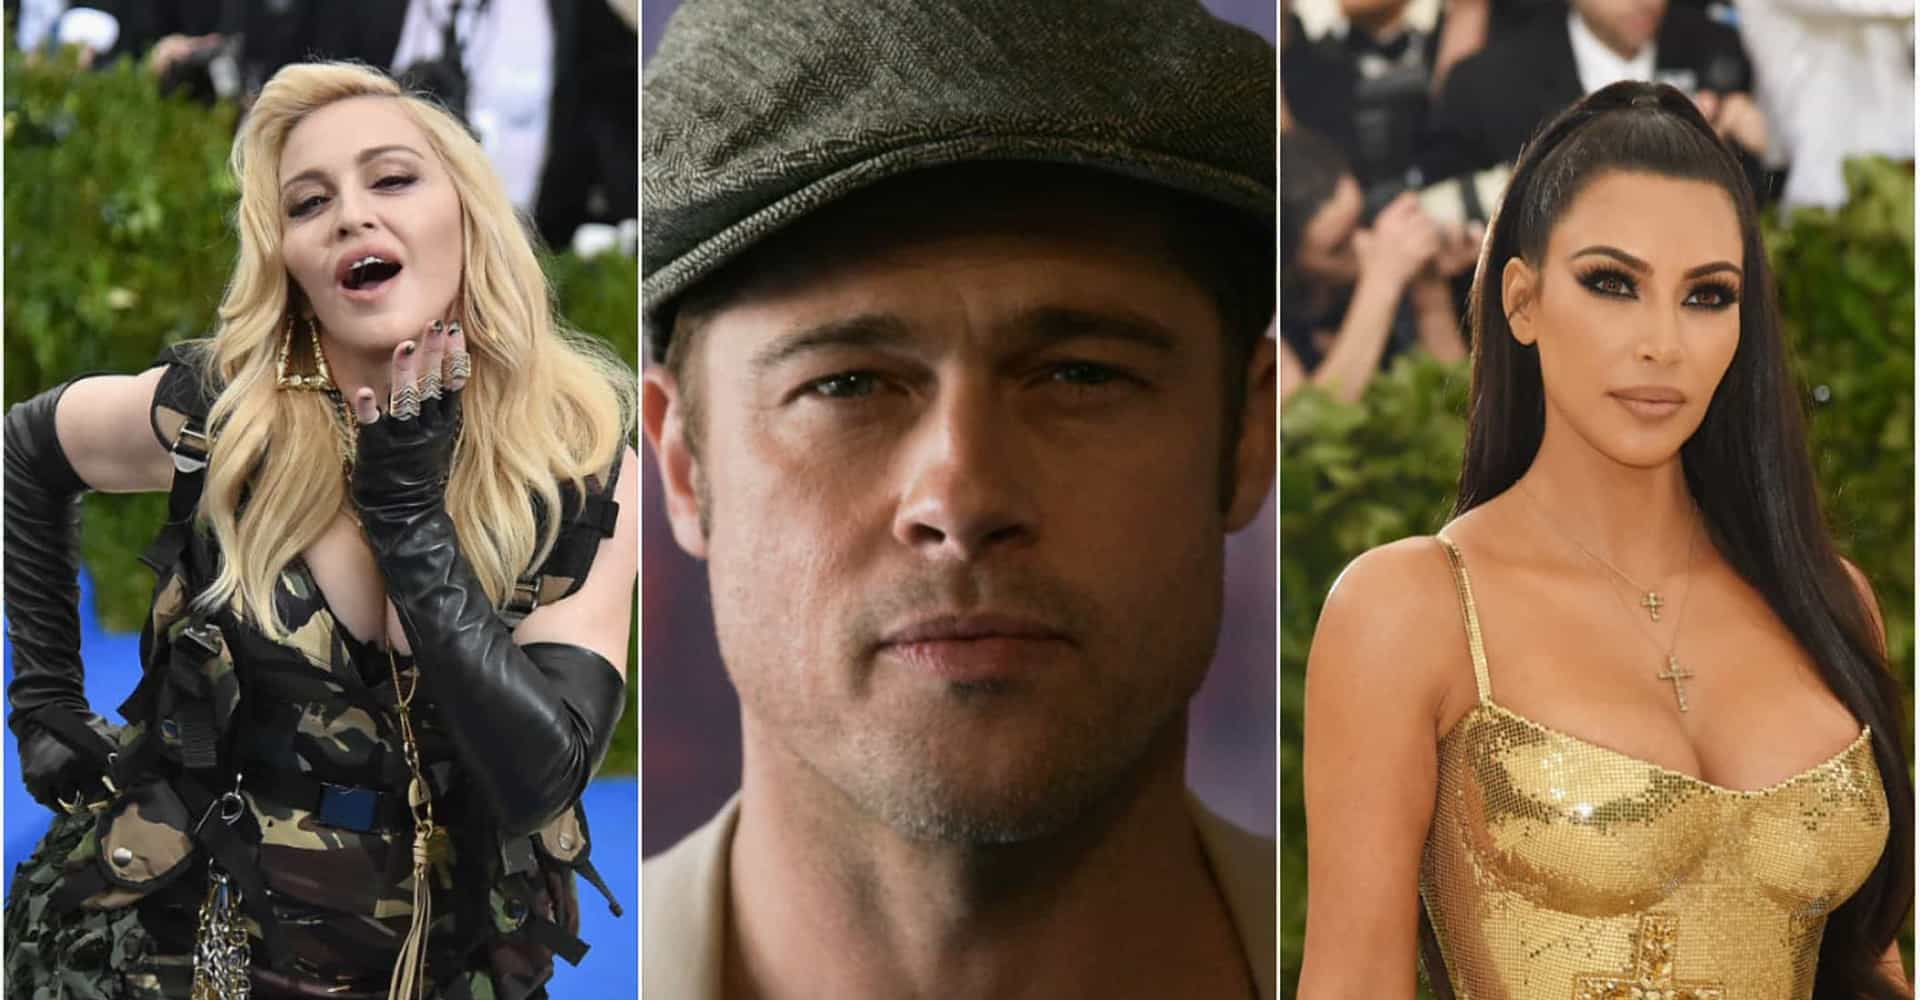 The creepiest celebrity stalker stories